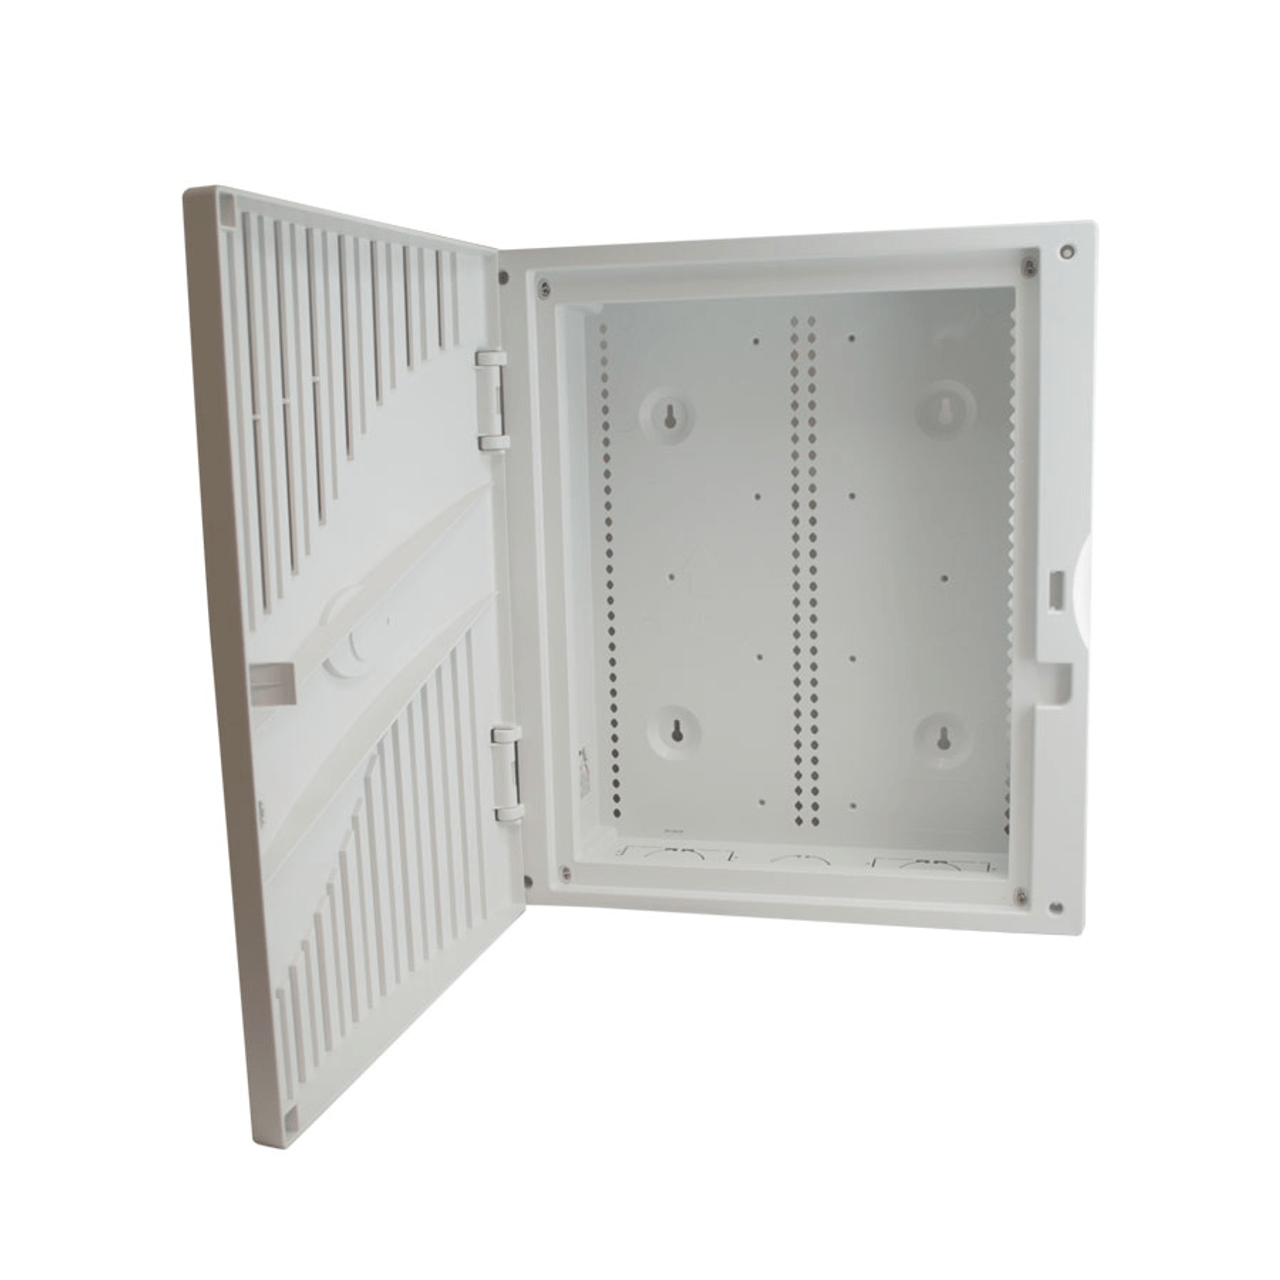 medium resolution of hcc 18 kit ecpl 18 plastic in wall or on wall structured wiring enclosure